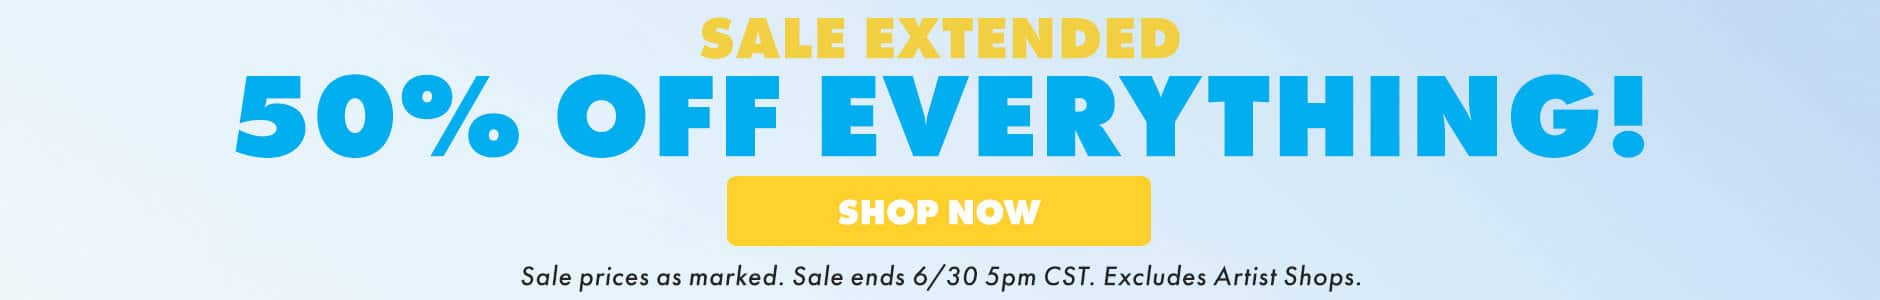 Sale extended 50% off everything. Shop now! Sale prices as marked. Sale ends 6/30 5PM CST. Excludes Artist Shops.